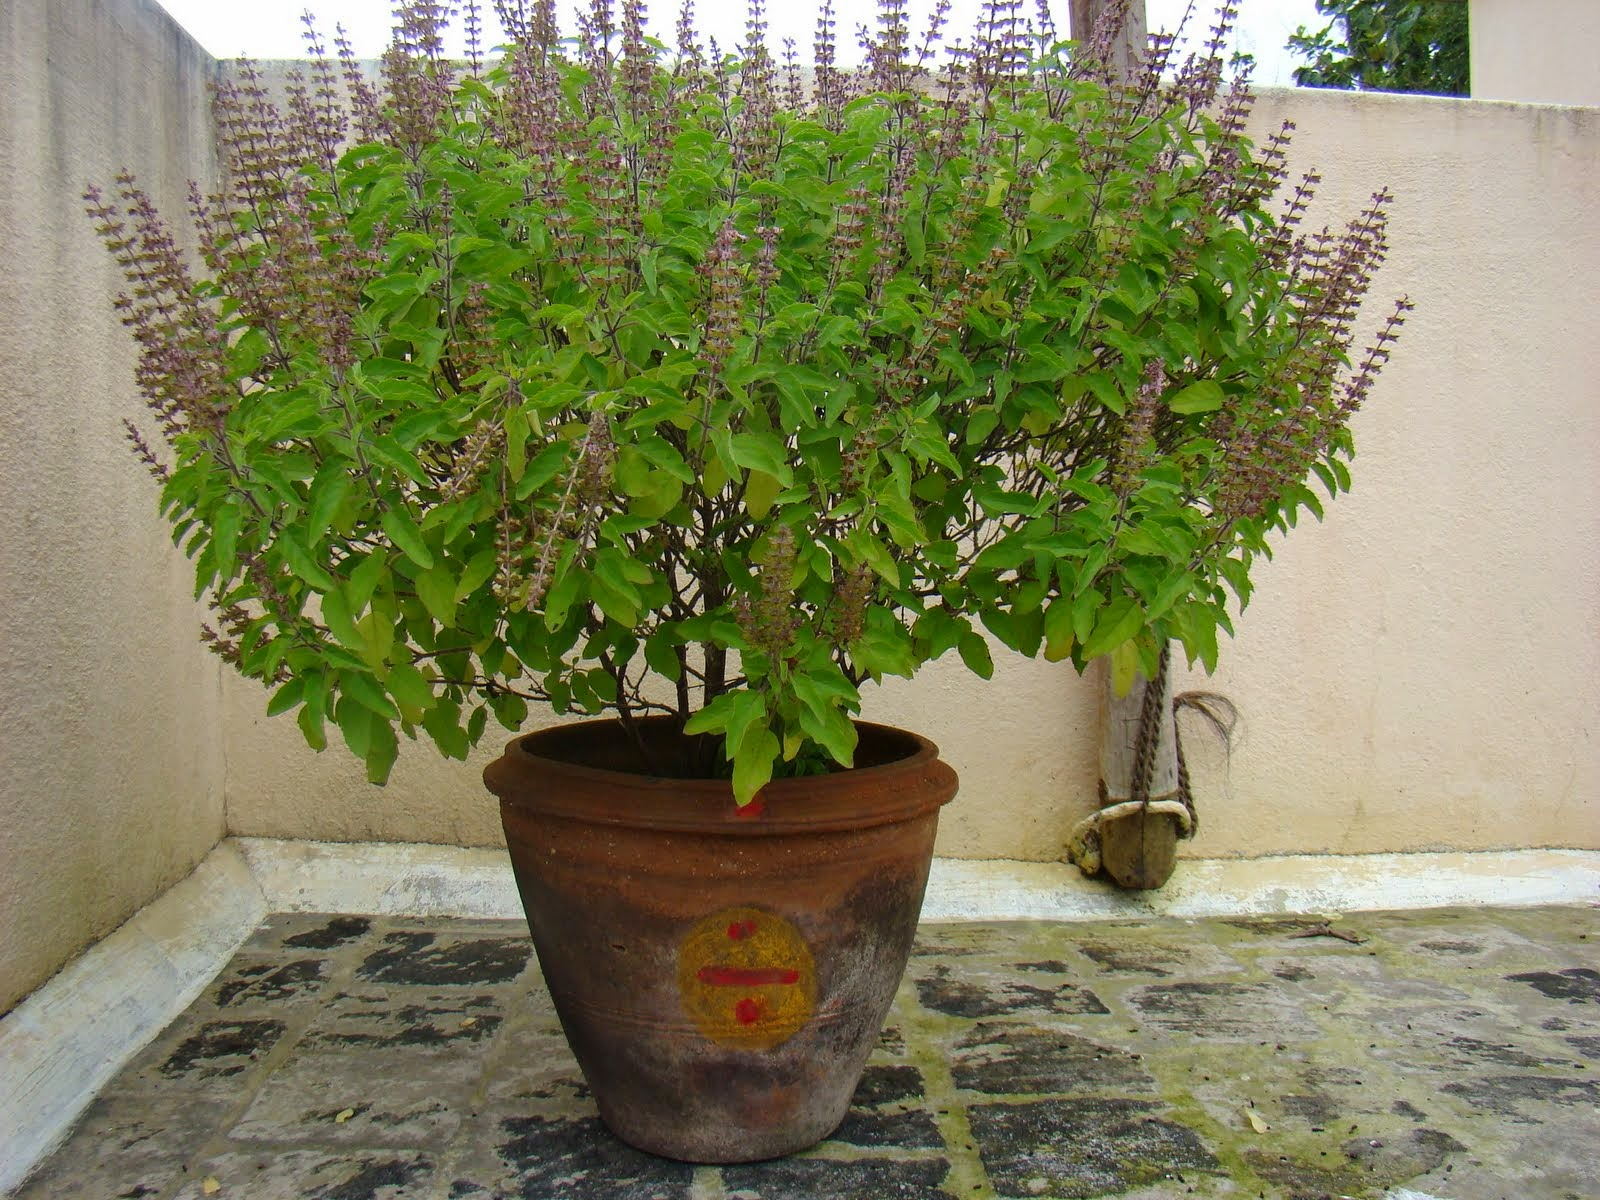 Indian Scientists Decode Tulsi Plant